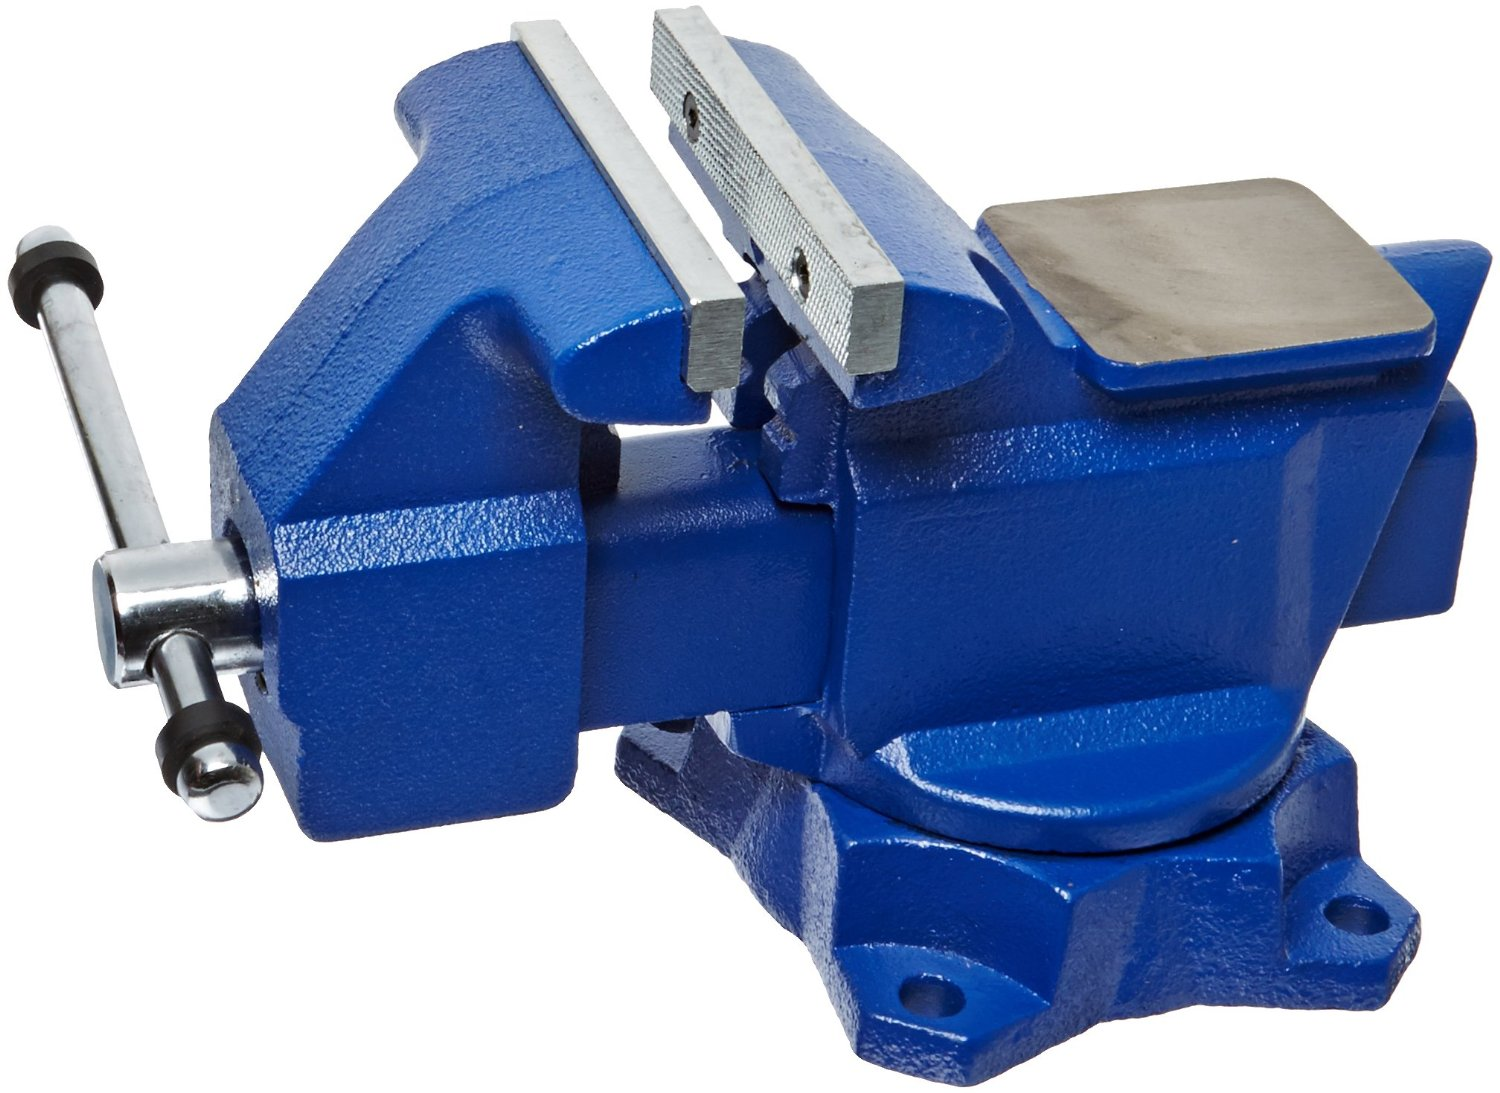 tool model clamps vises vise width bench wilton multipurpose shop category tools northern industrial hand jaw